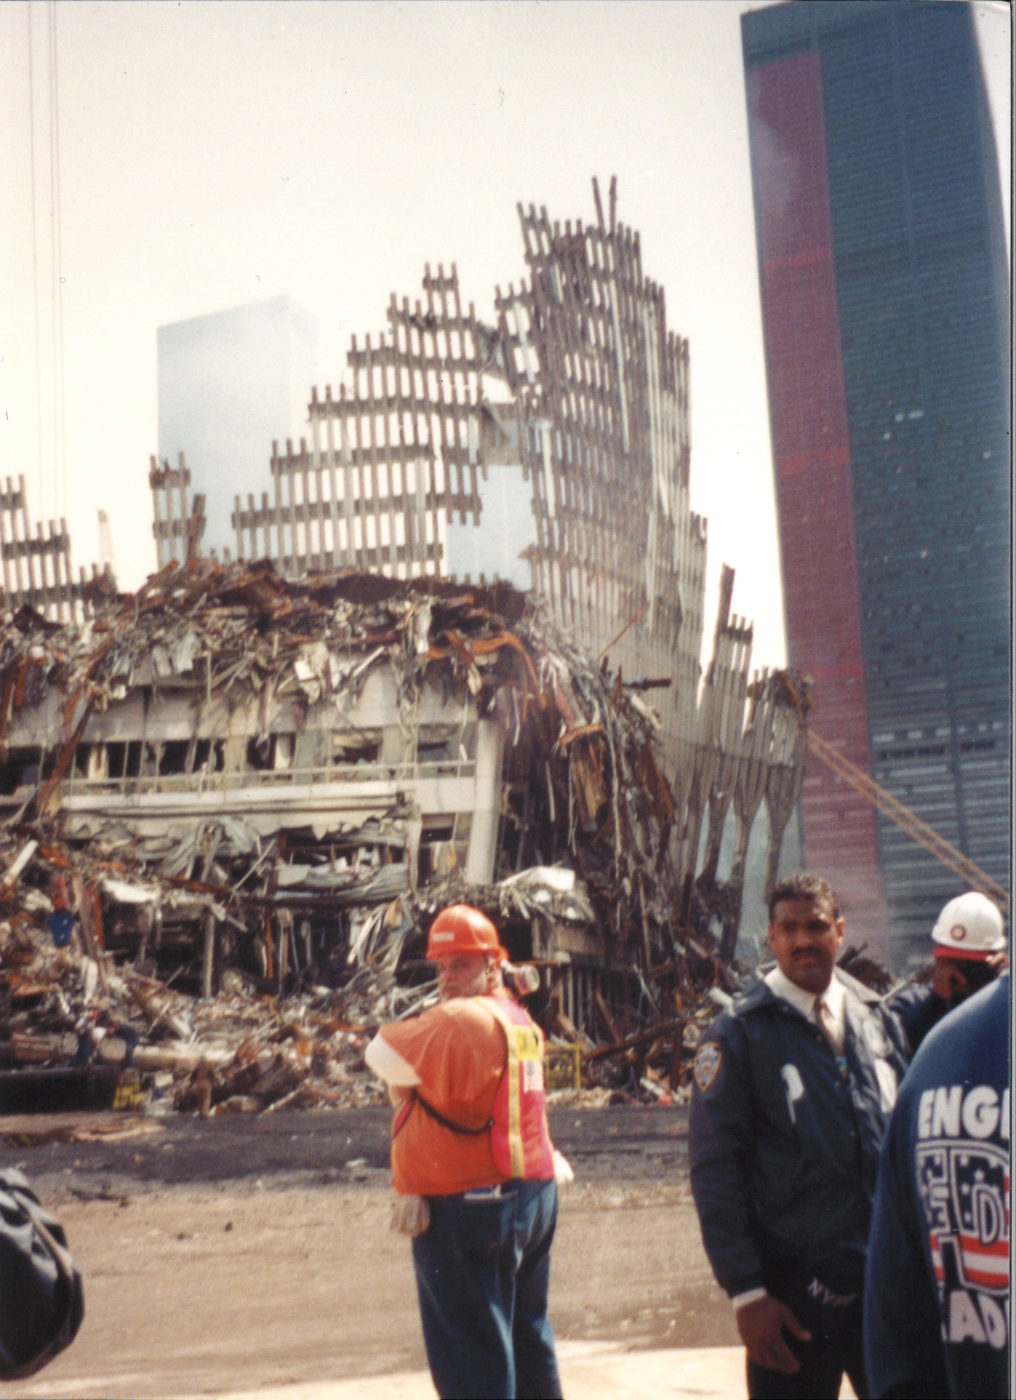 Workers and Fire Fighters at Ground Zero